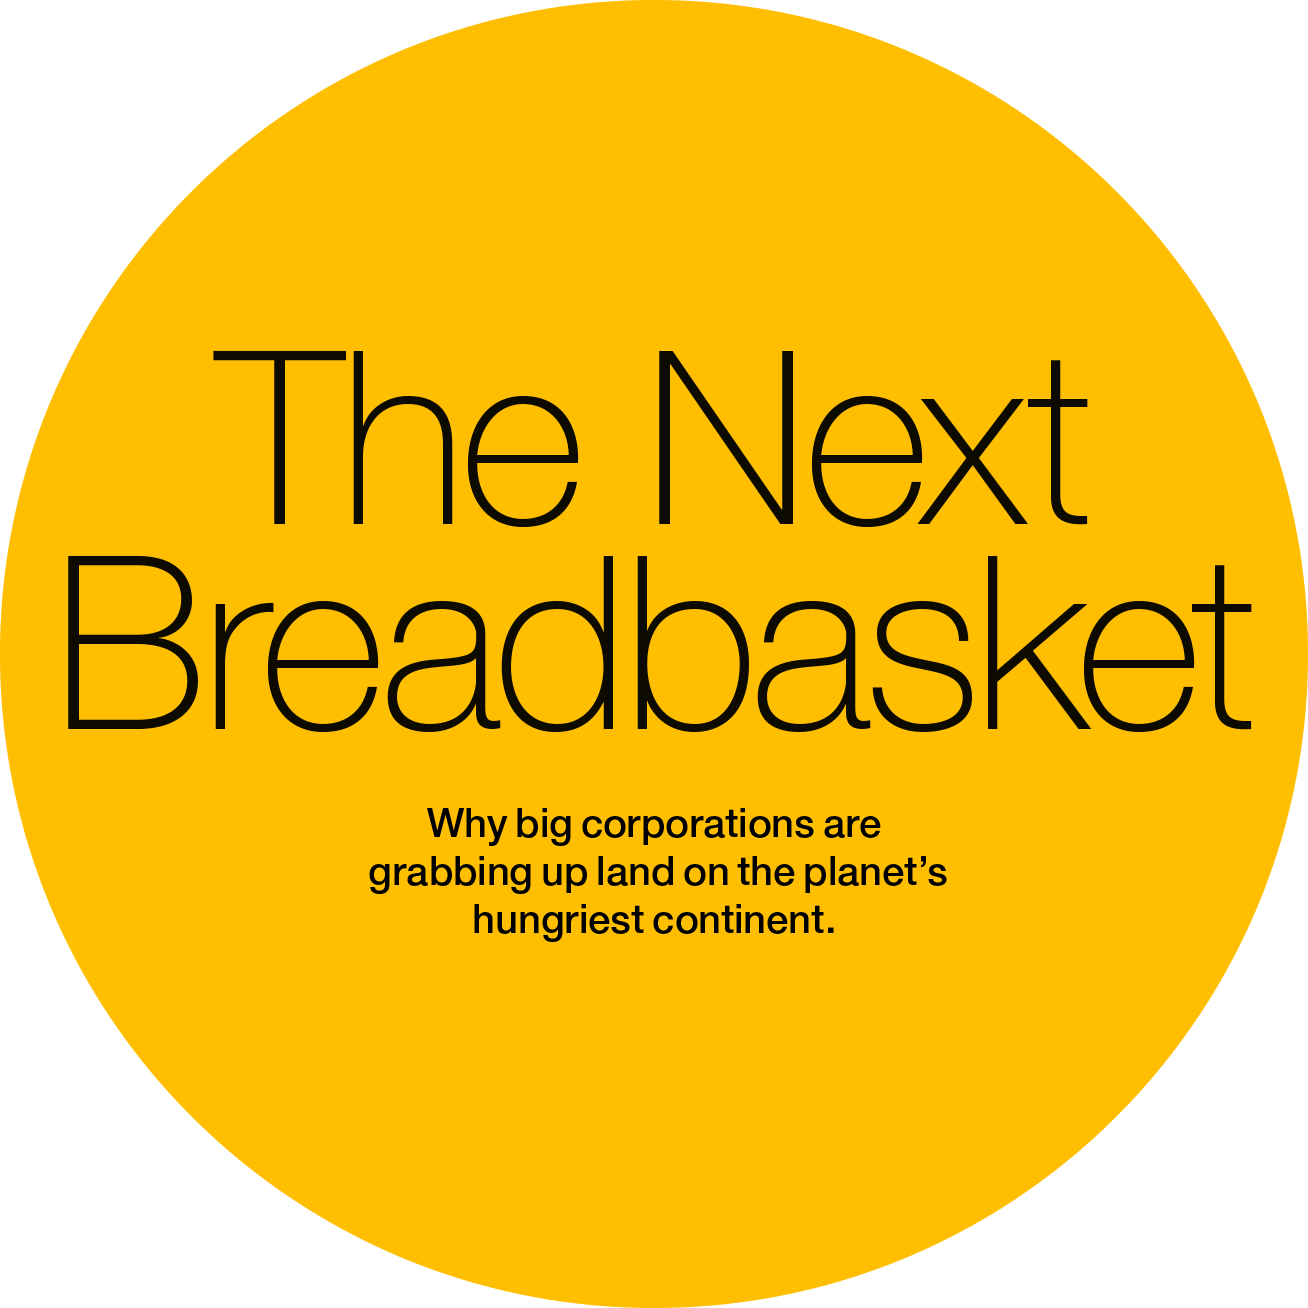 the next breadbasket national geographic